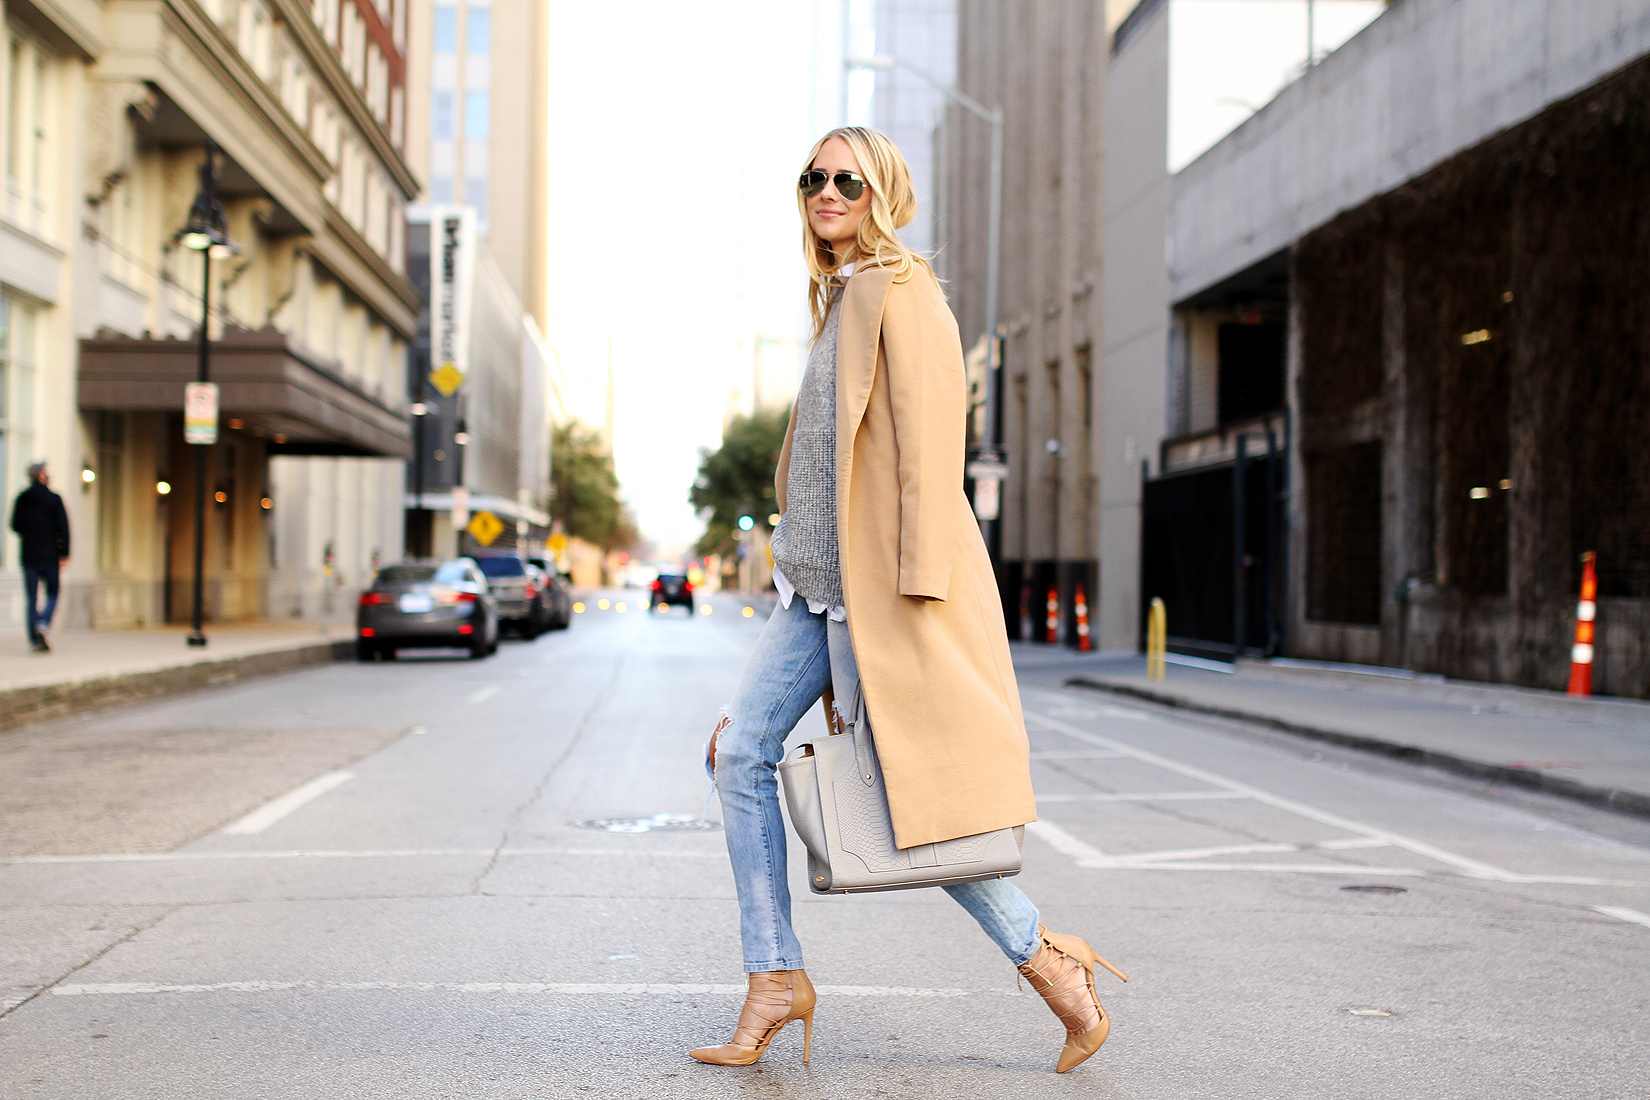 fashion-jackson-camel-coat-ripped-skinny-jeans-nude-pumps